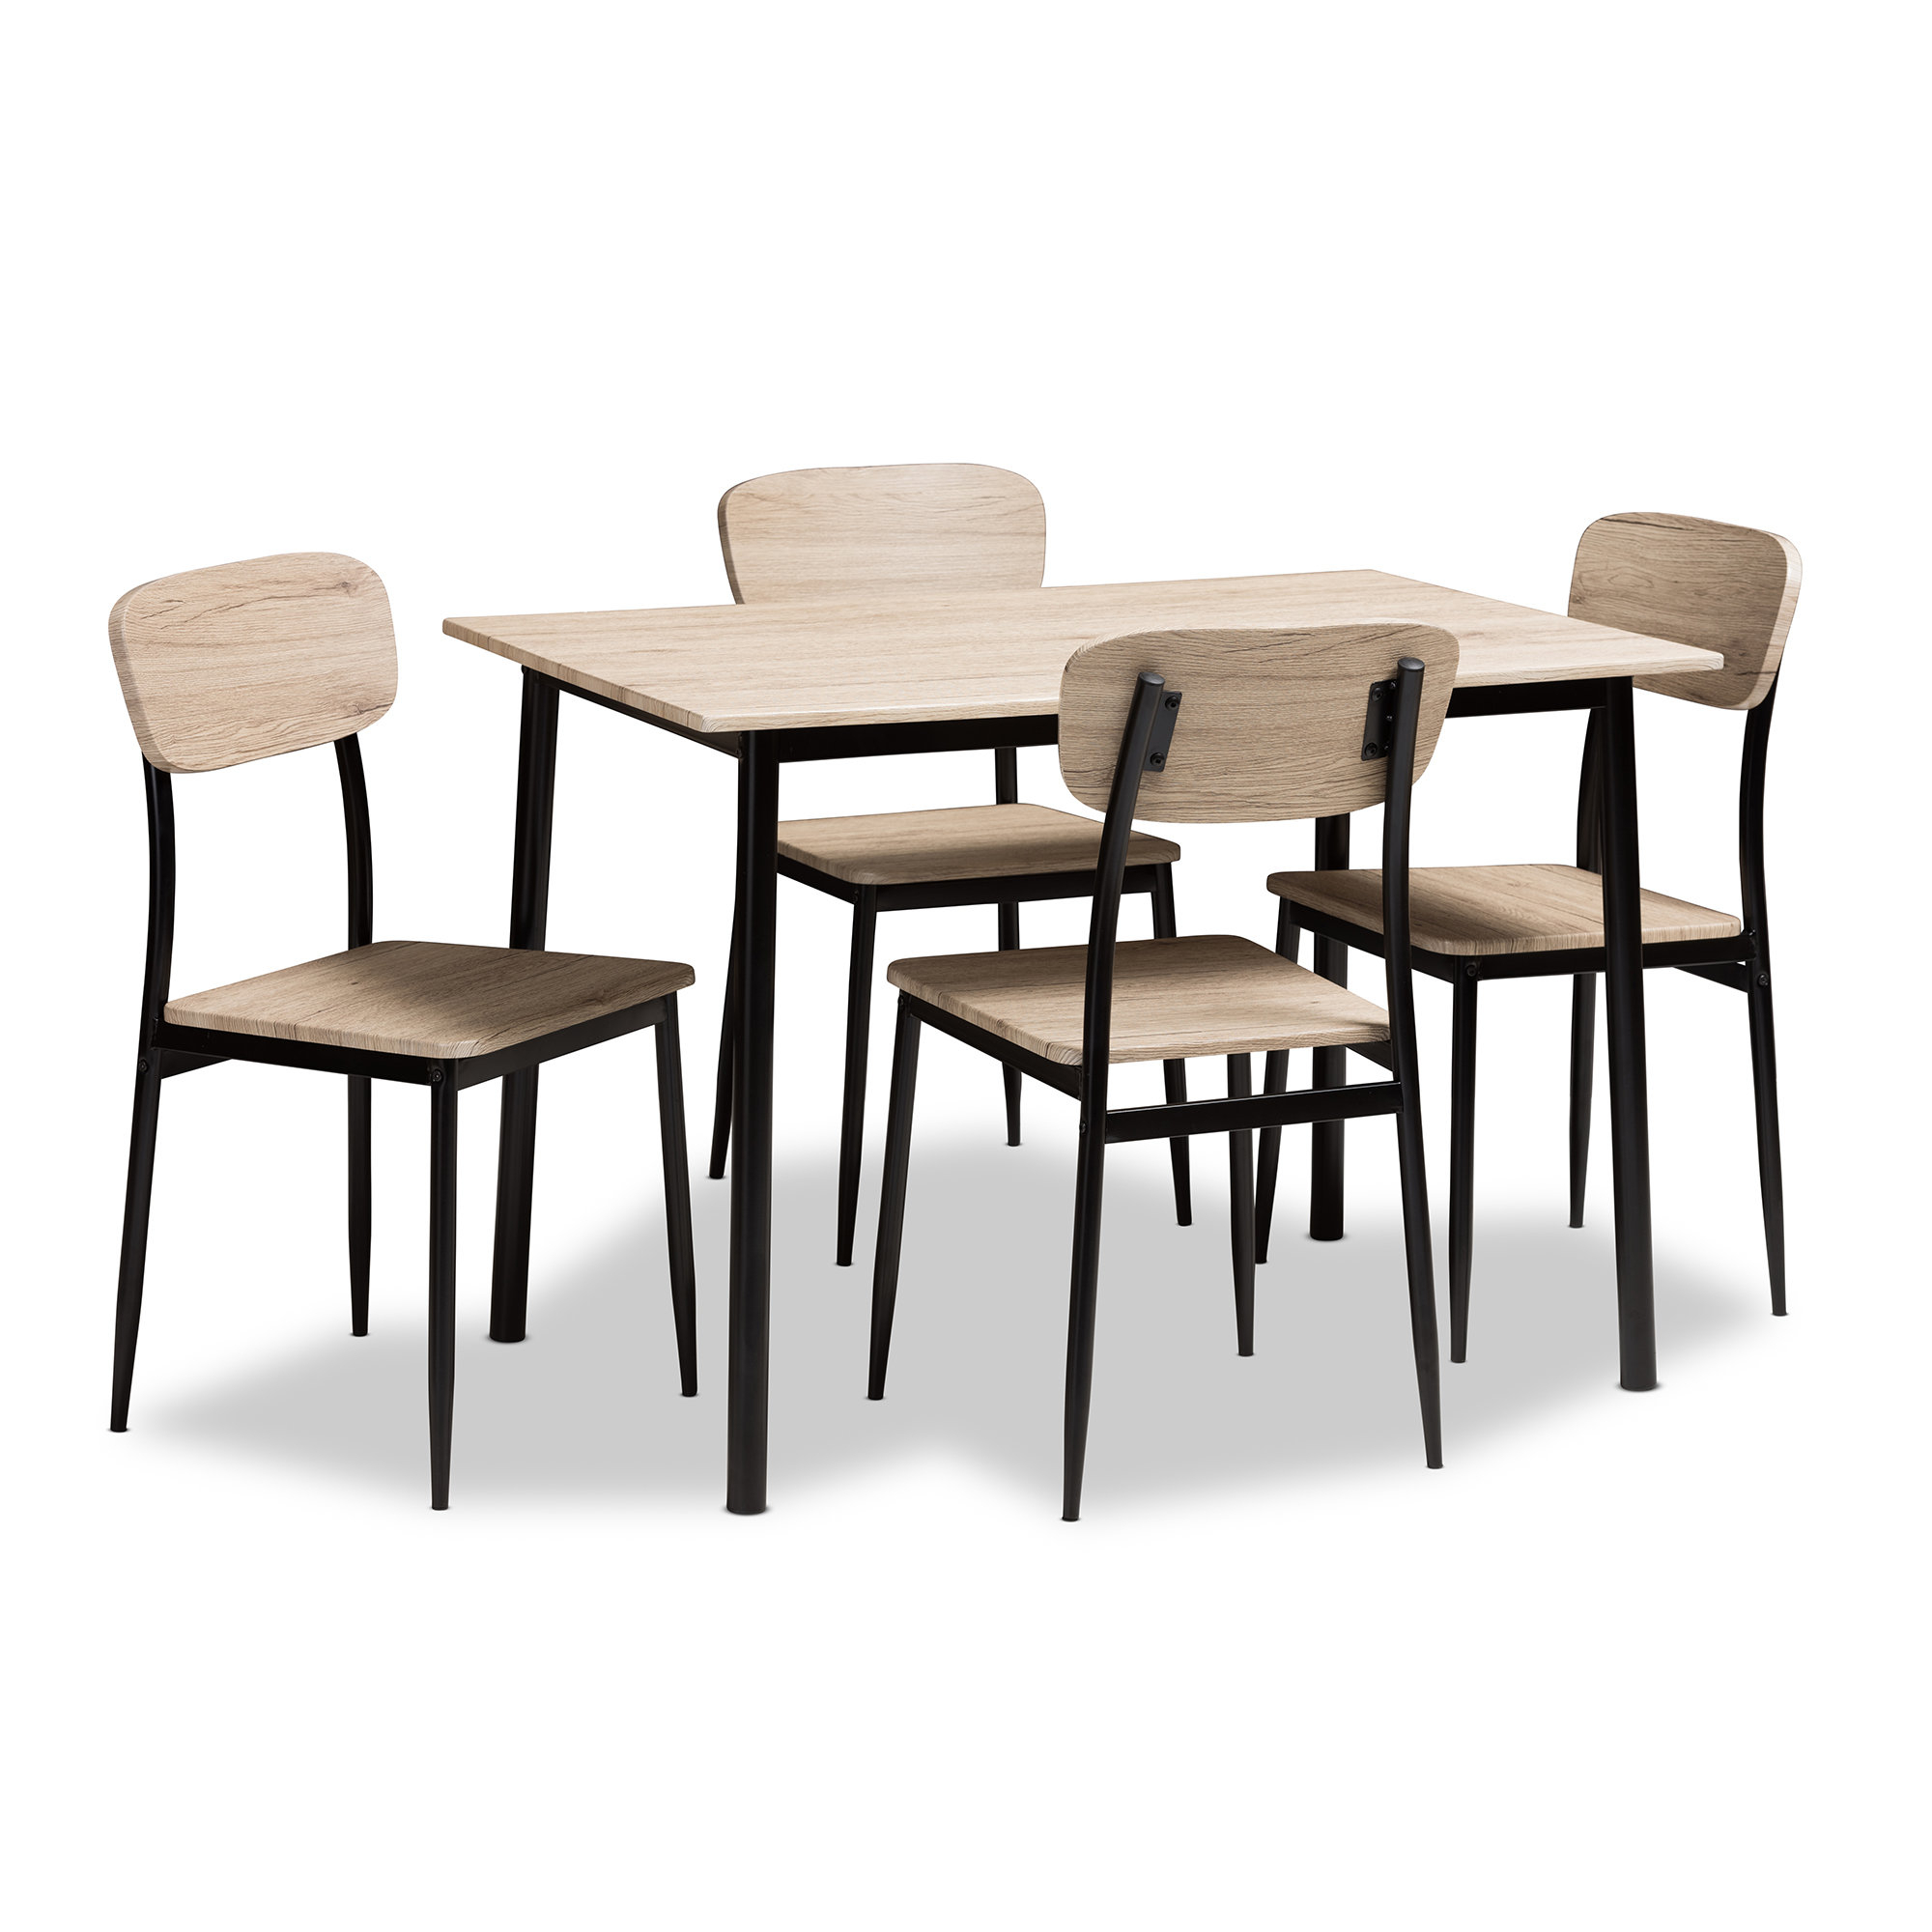 Wiggs 5 Piece Dining Set Within Best And Newest Taulbee 5 Piece Dining Sets (View 6 of 20)